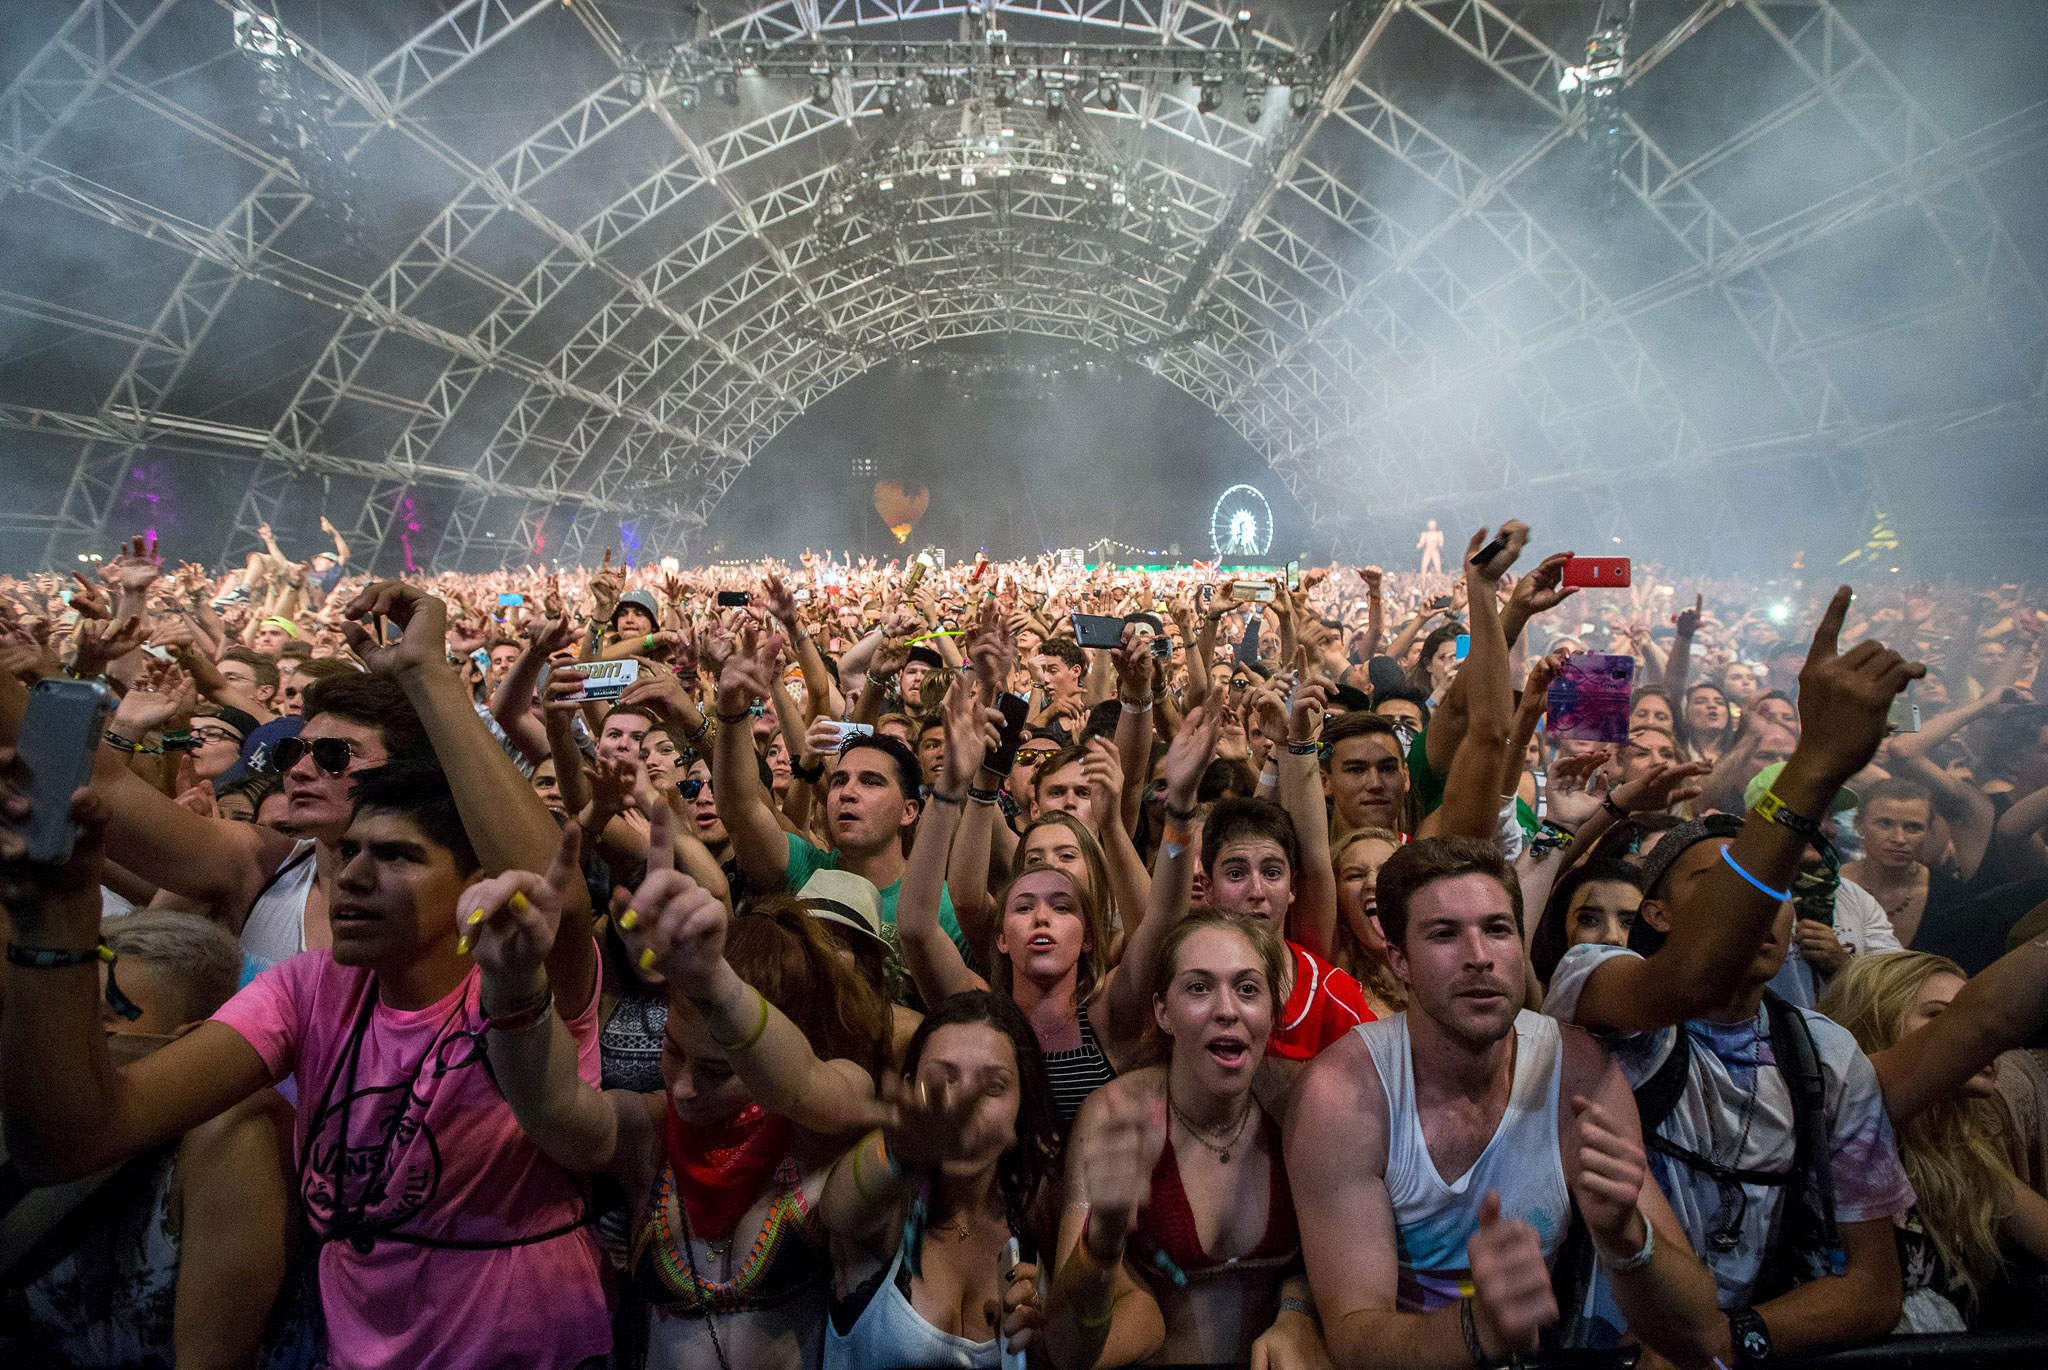 Fans listen to David Guetta at the Coachella Valley Music and Arts Festival in Indio, California.